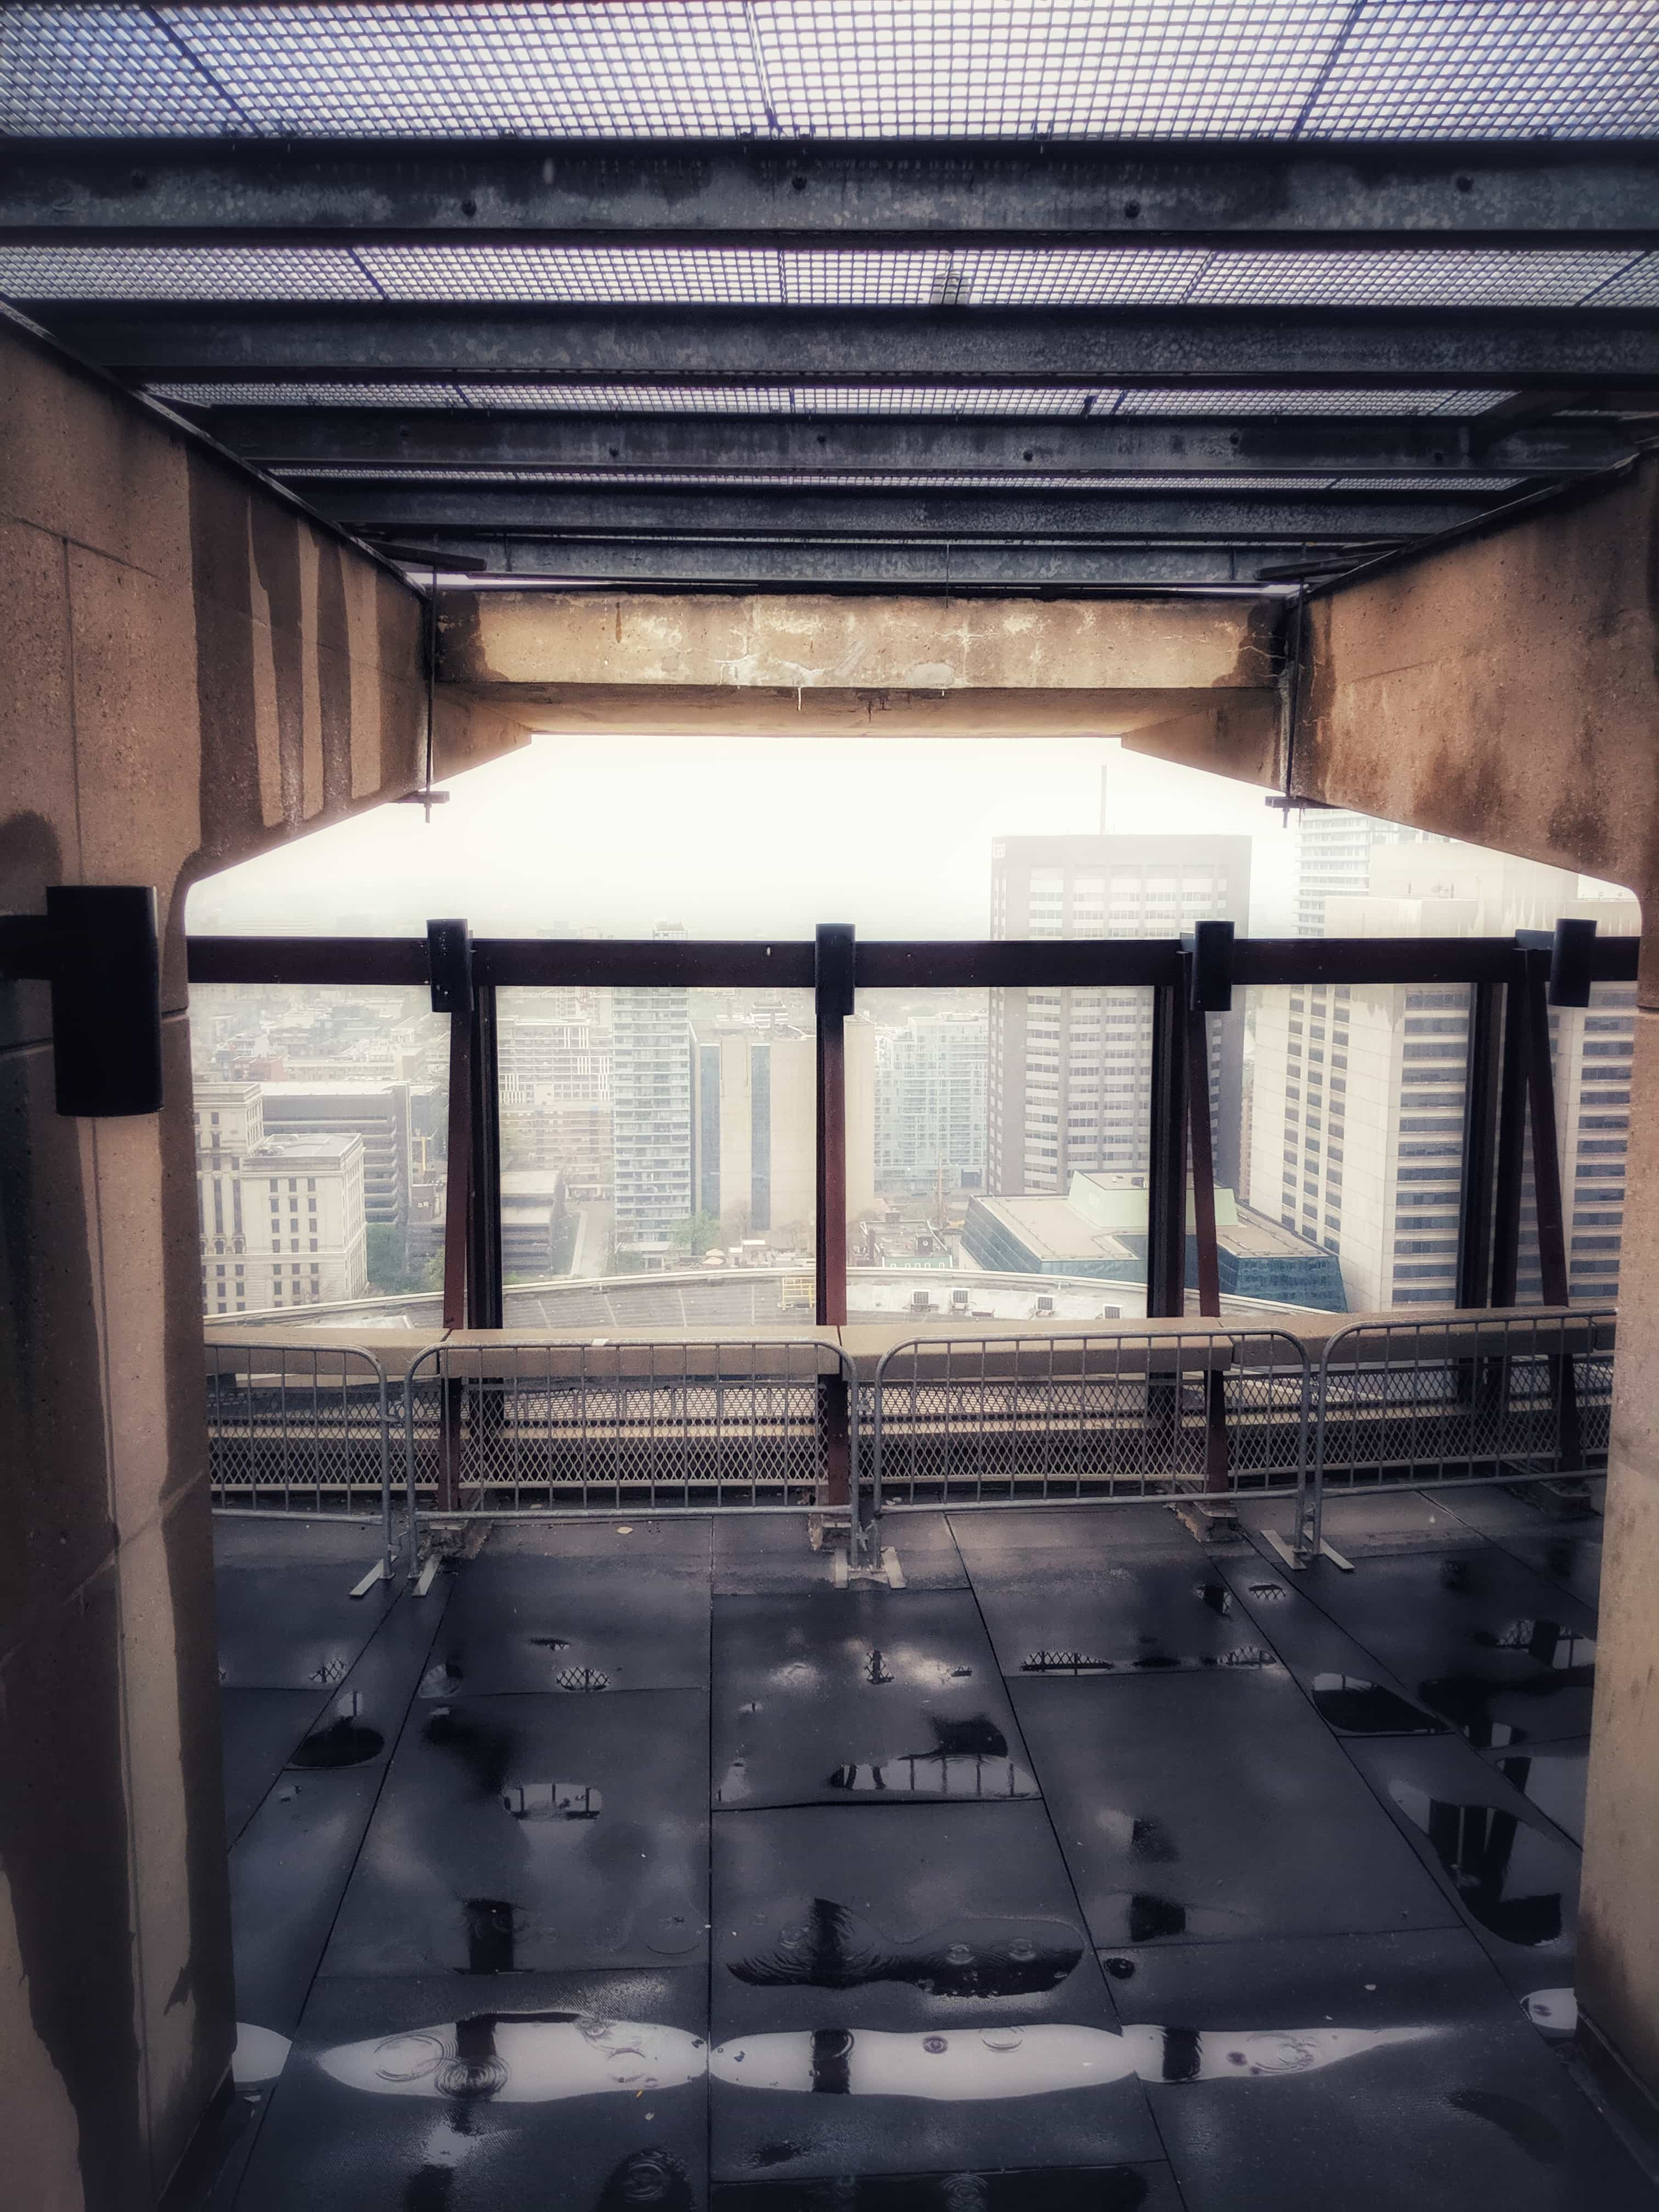 The rarely-open observation deck near the top of City Hall in Toronto.